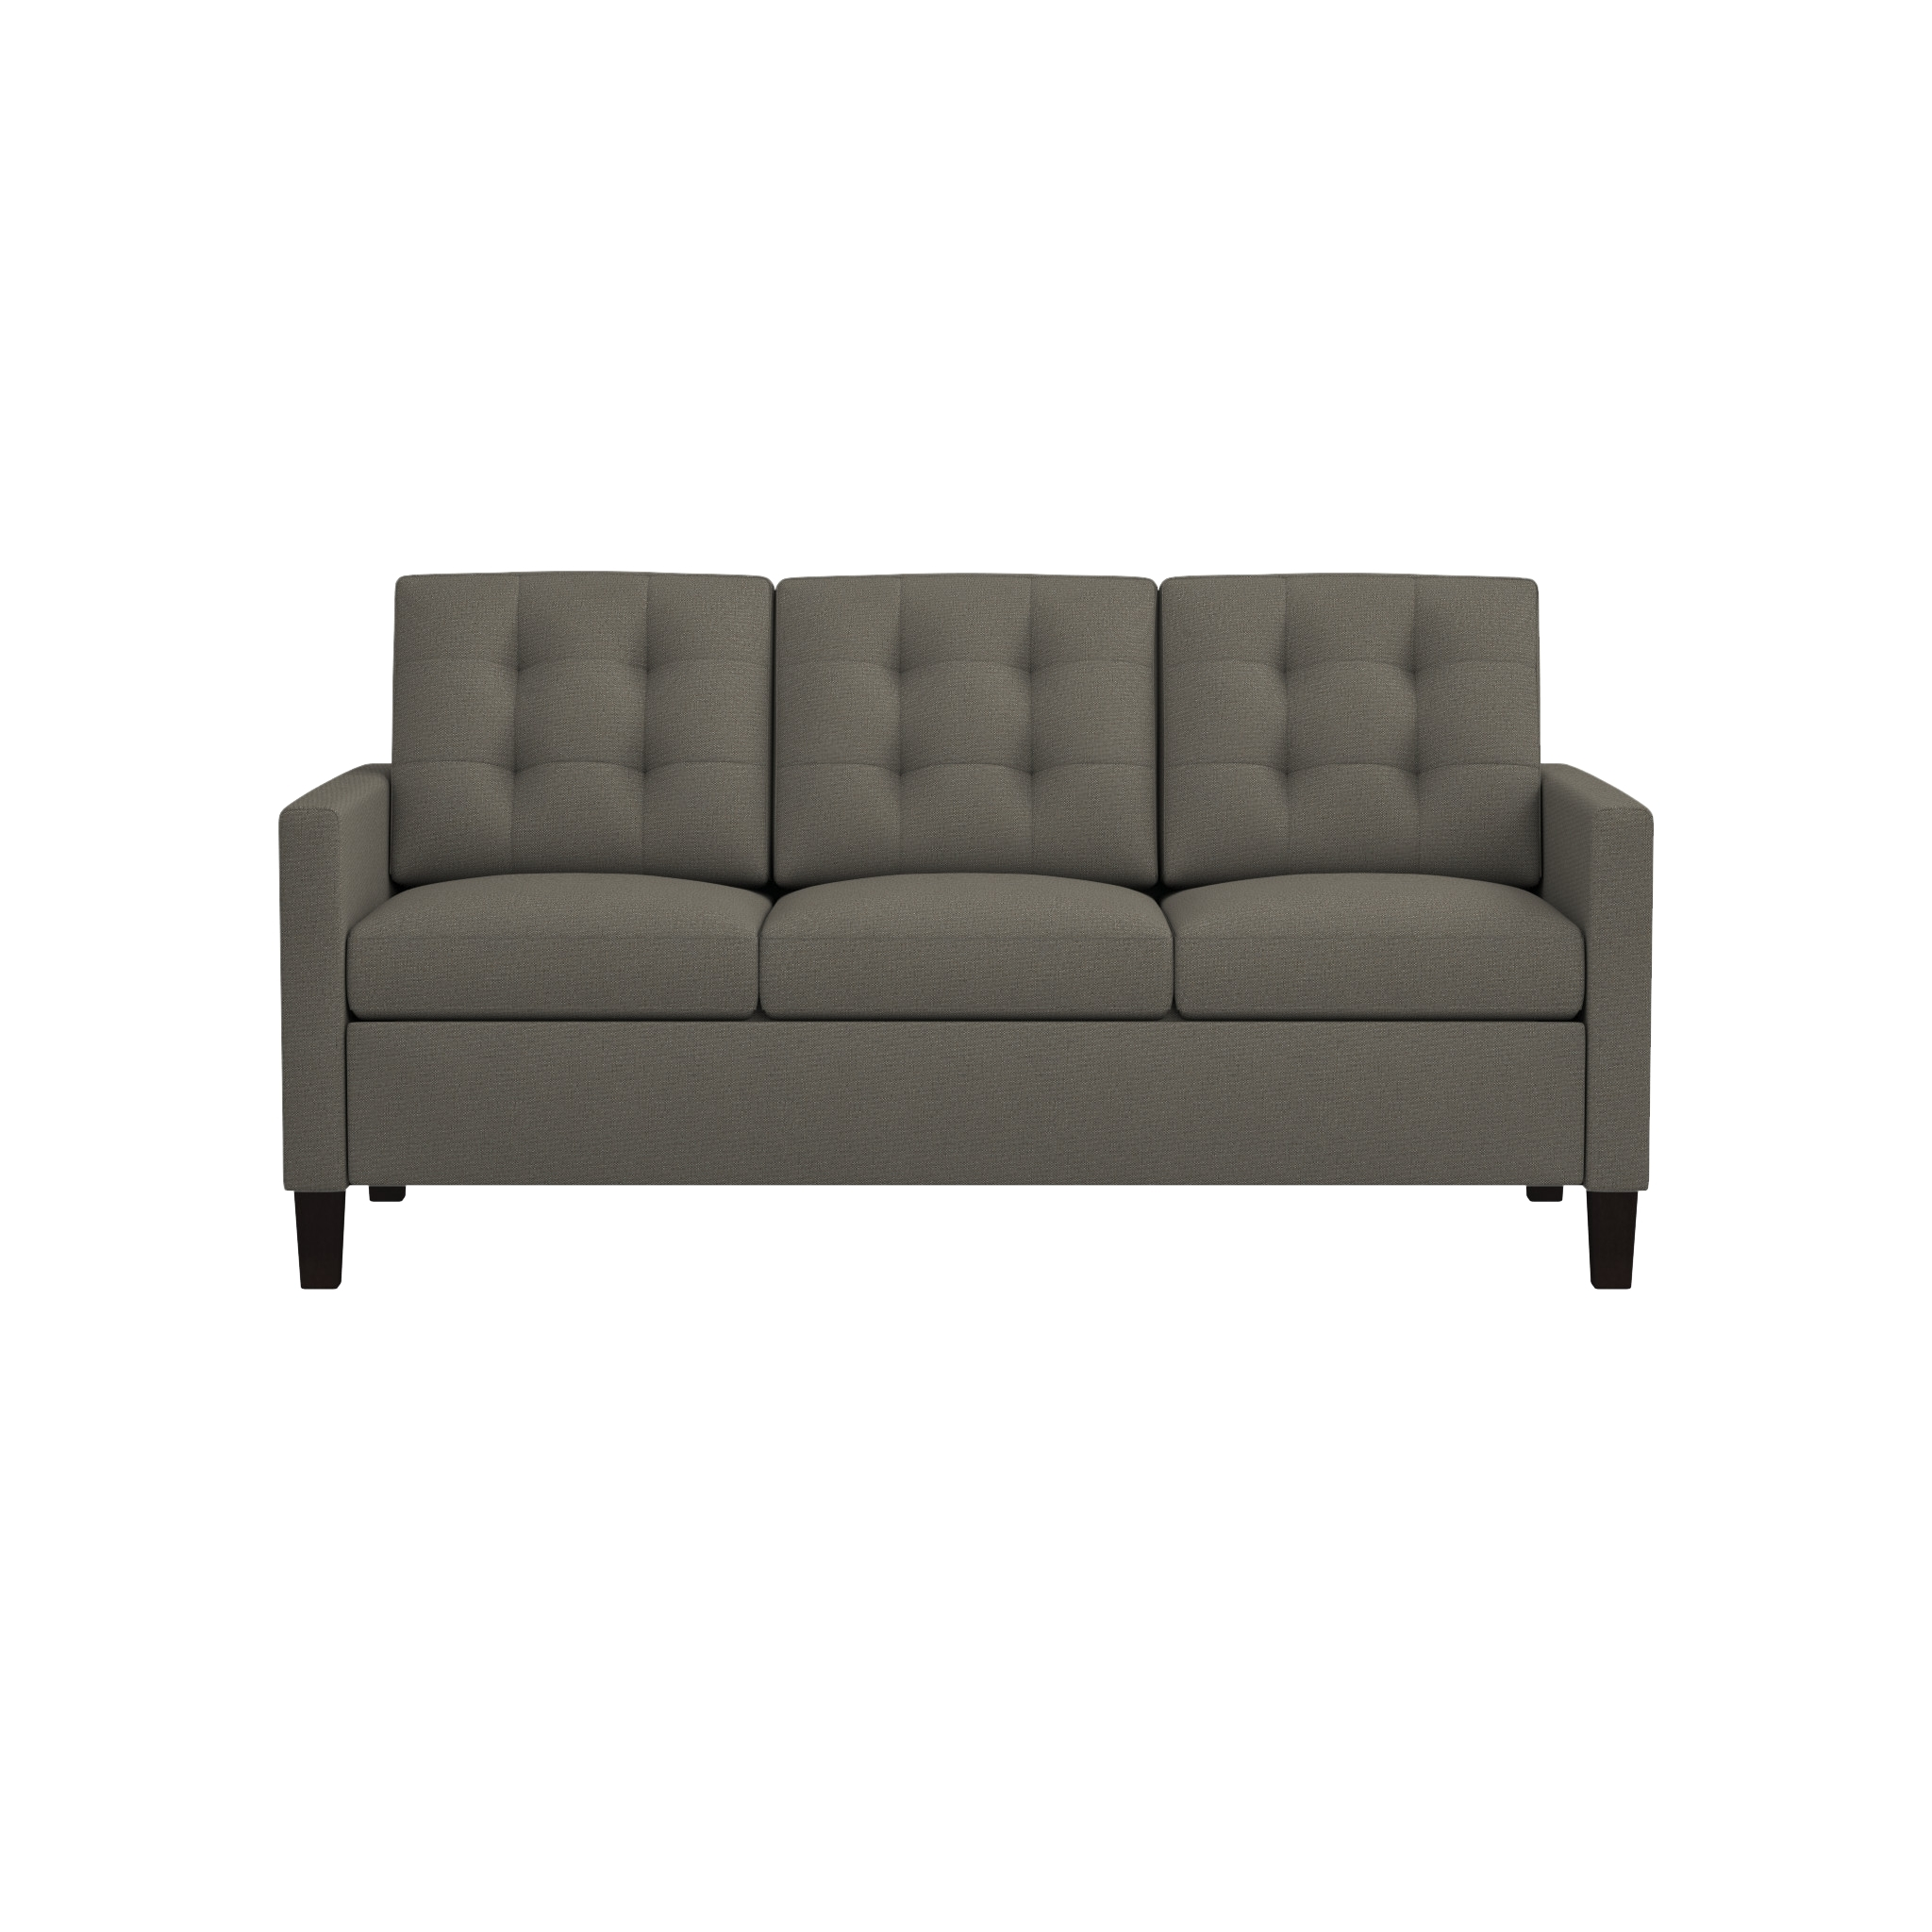 20 Collection Of Crate And Barrel Sleeper Sofas | Sofa Ideas throughout Crate And Barrel Sleeper Sofas (Image 1 of 15)